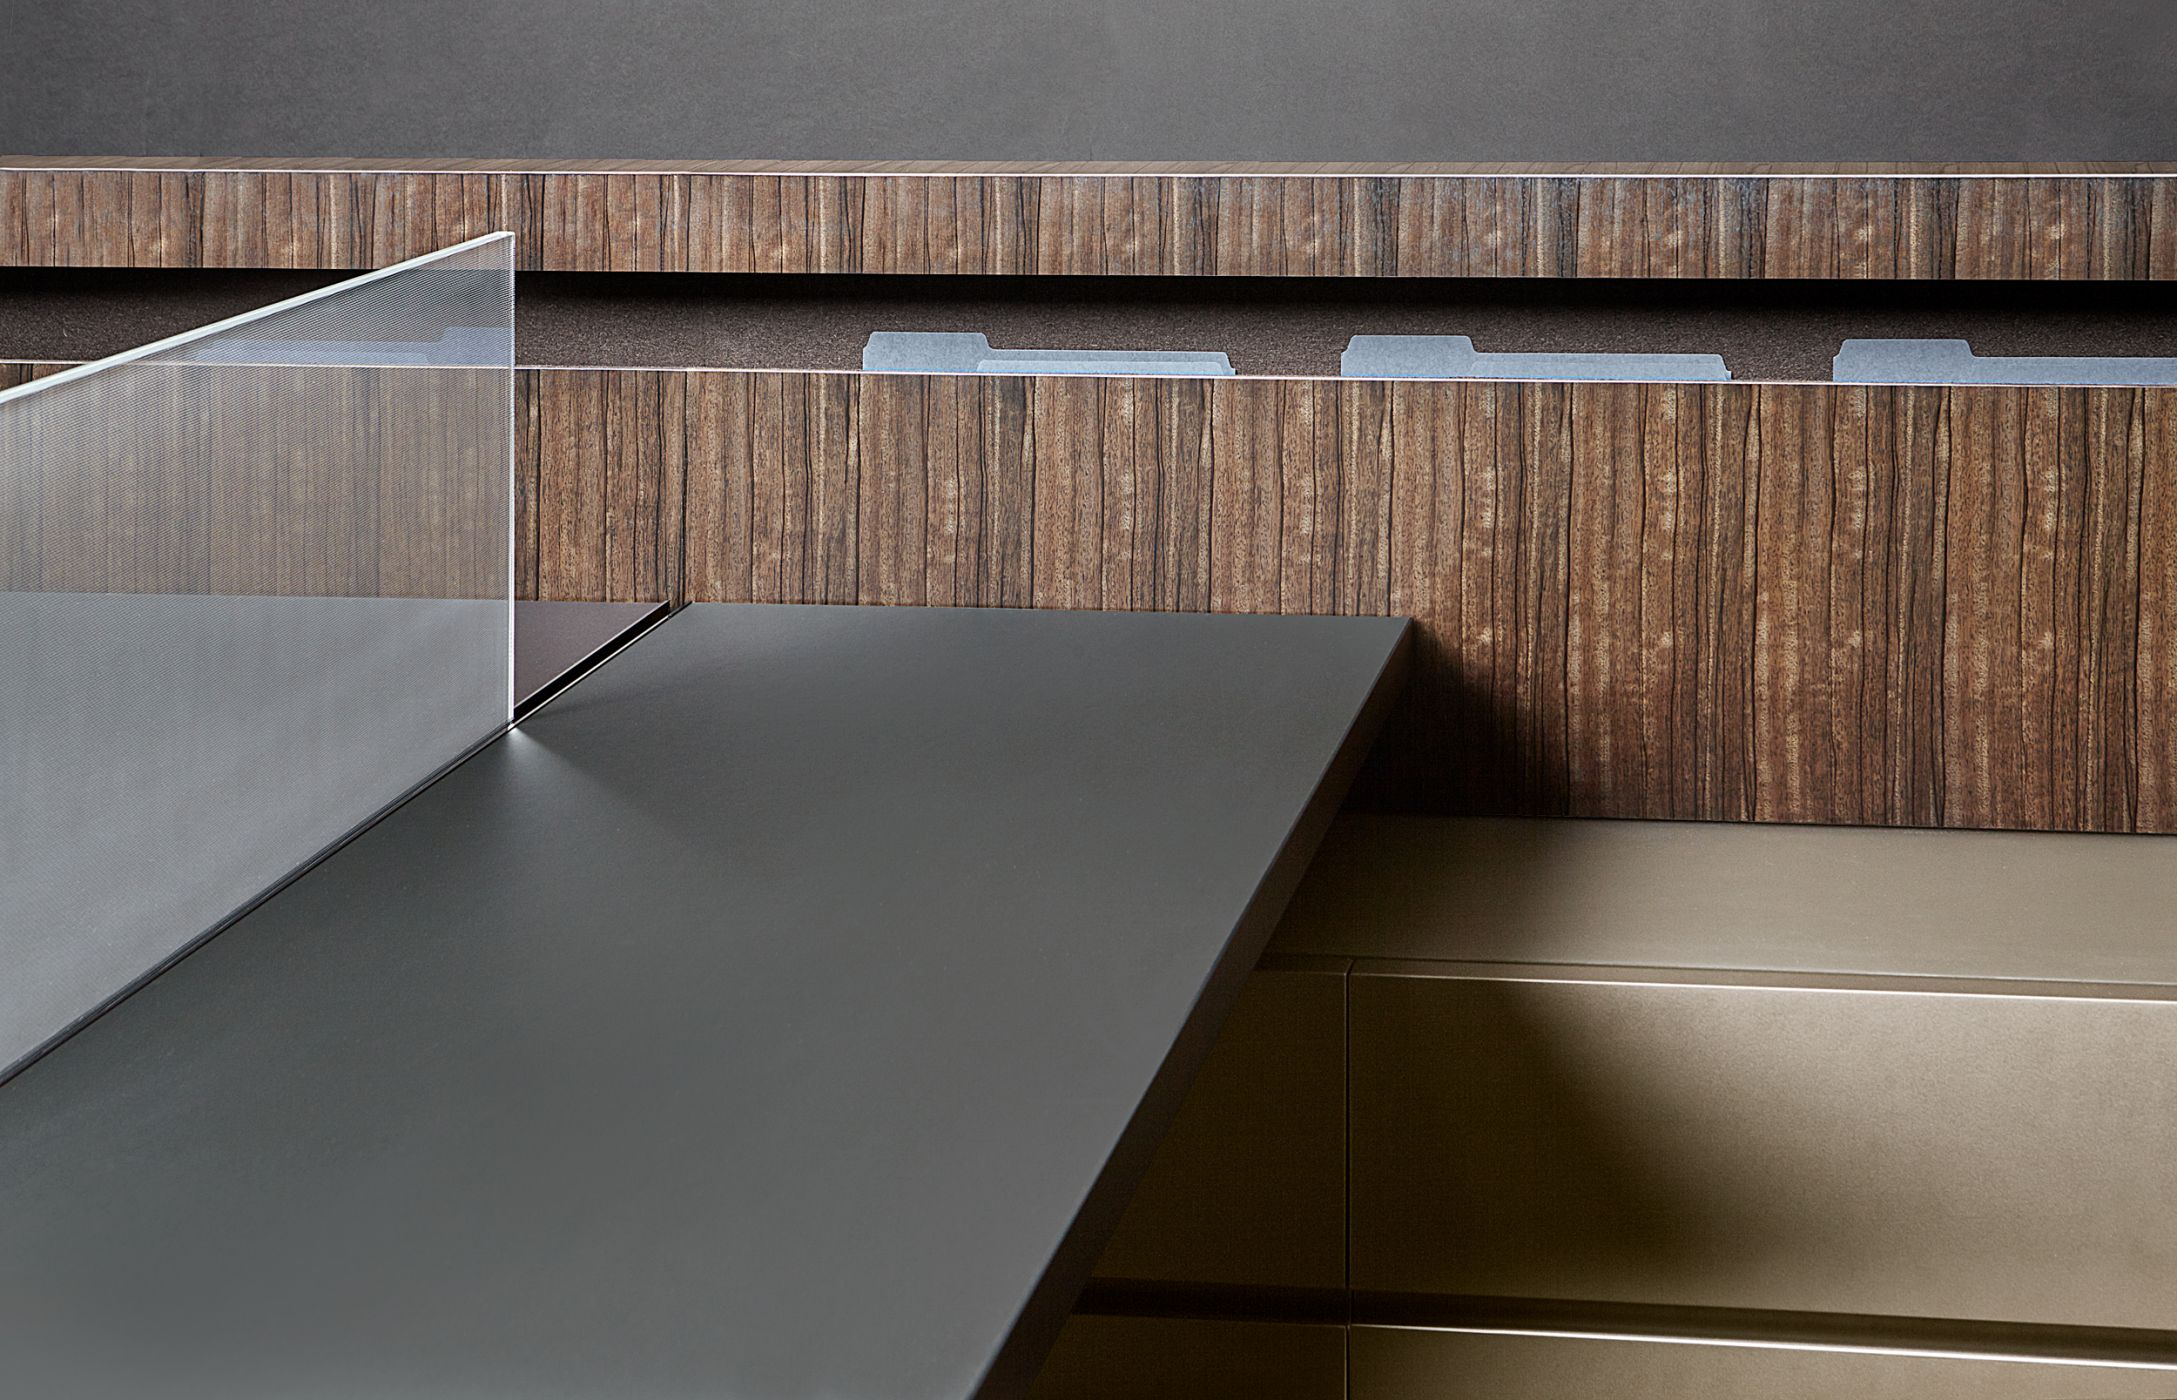 Foundry showcases a harmonious use of materials, surfaces, and textures.